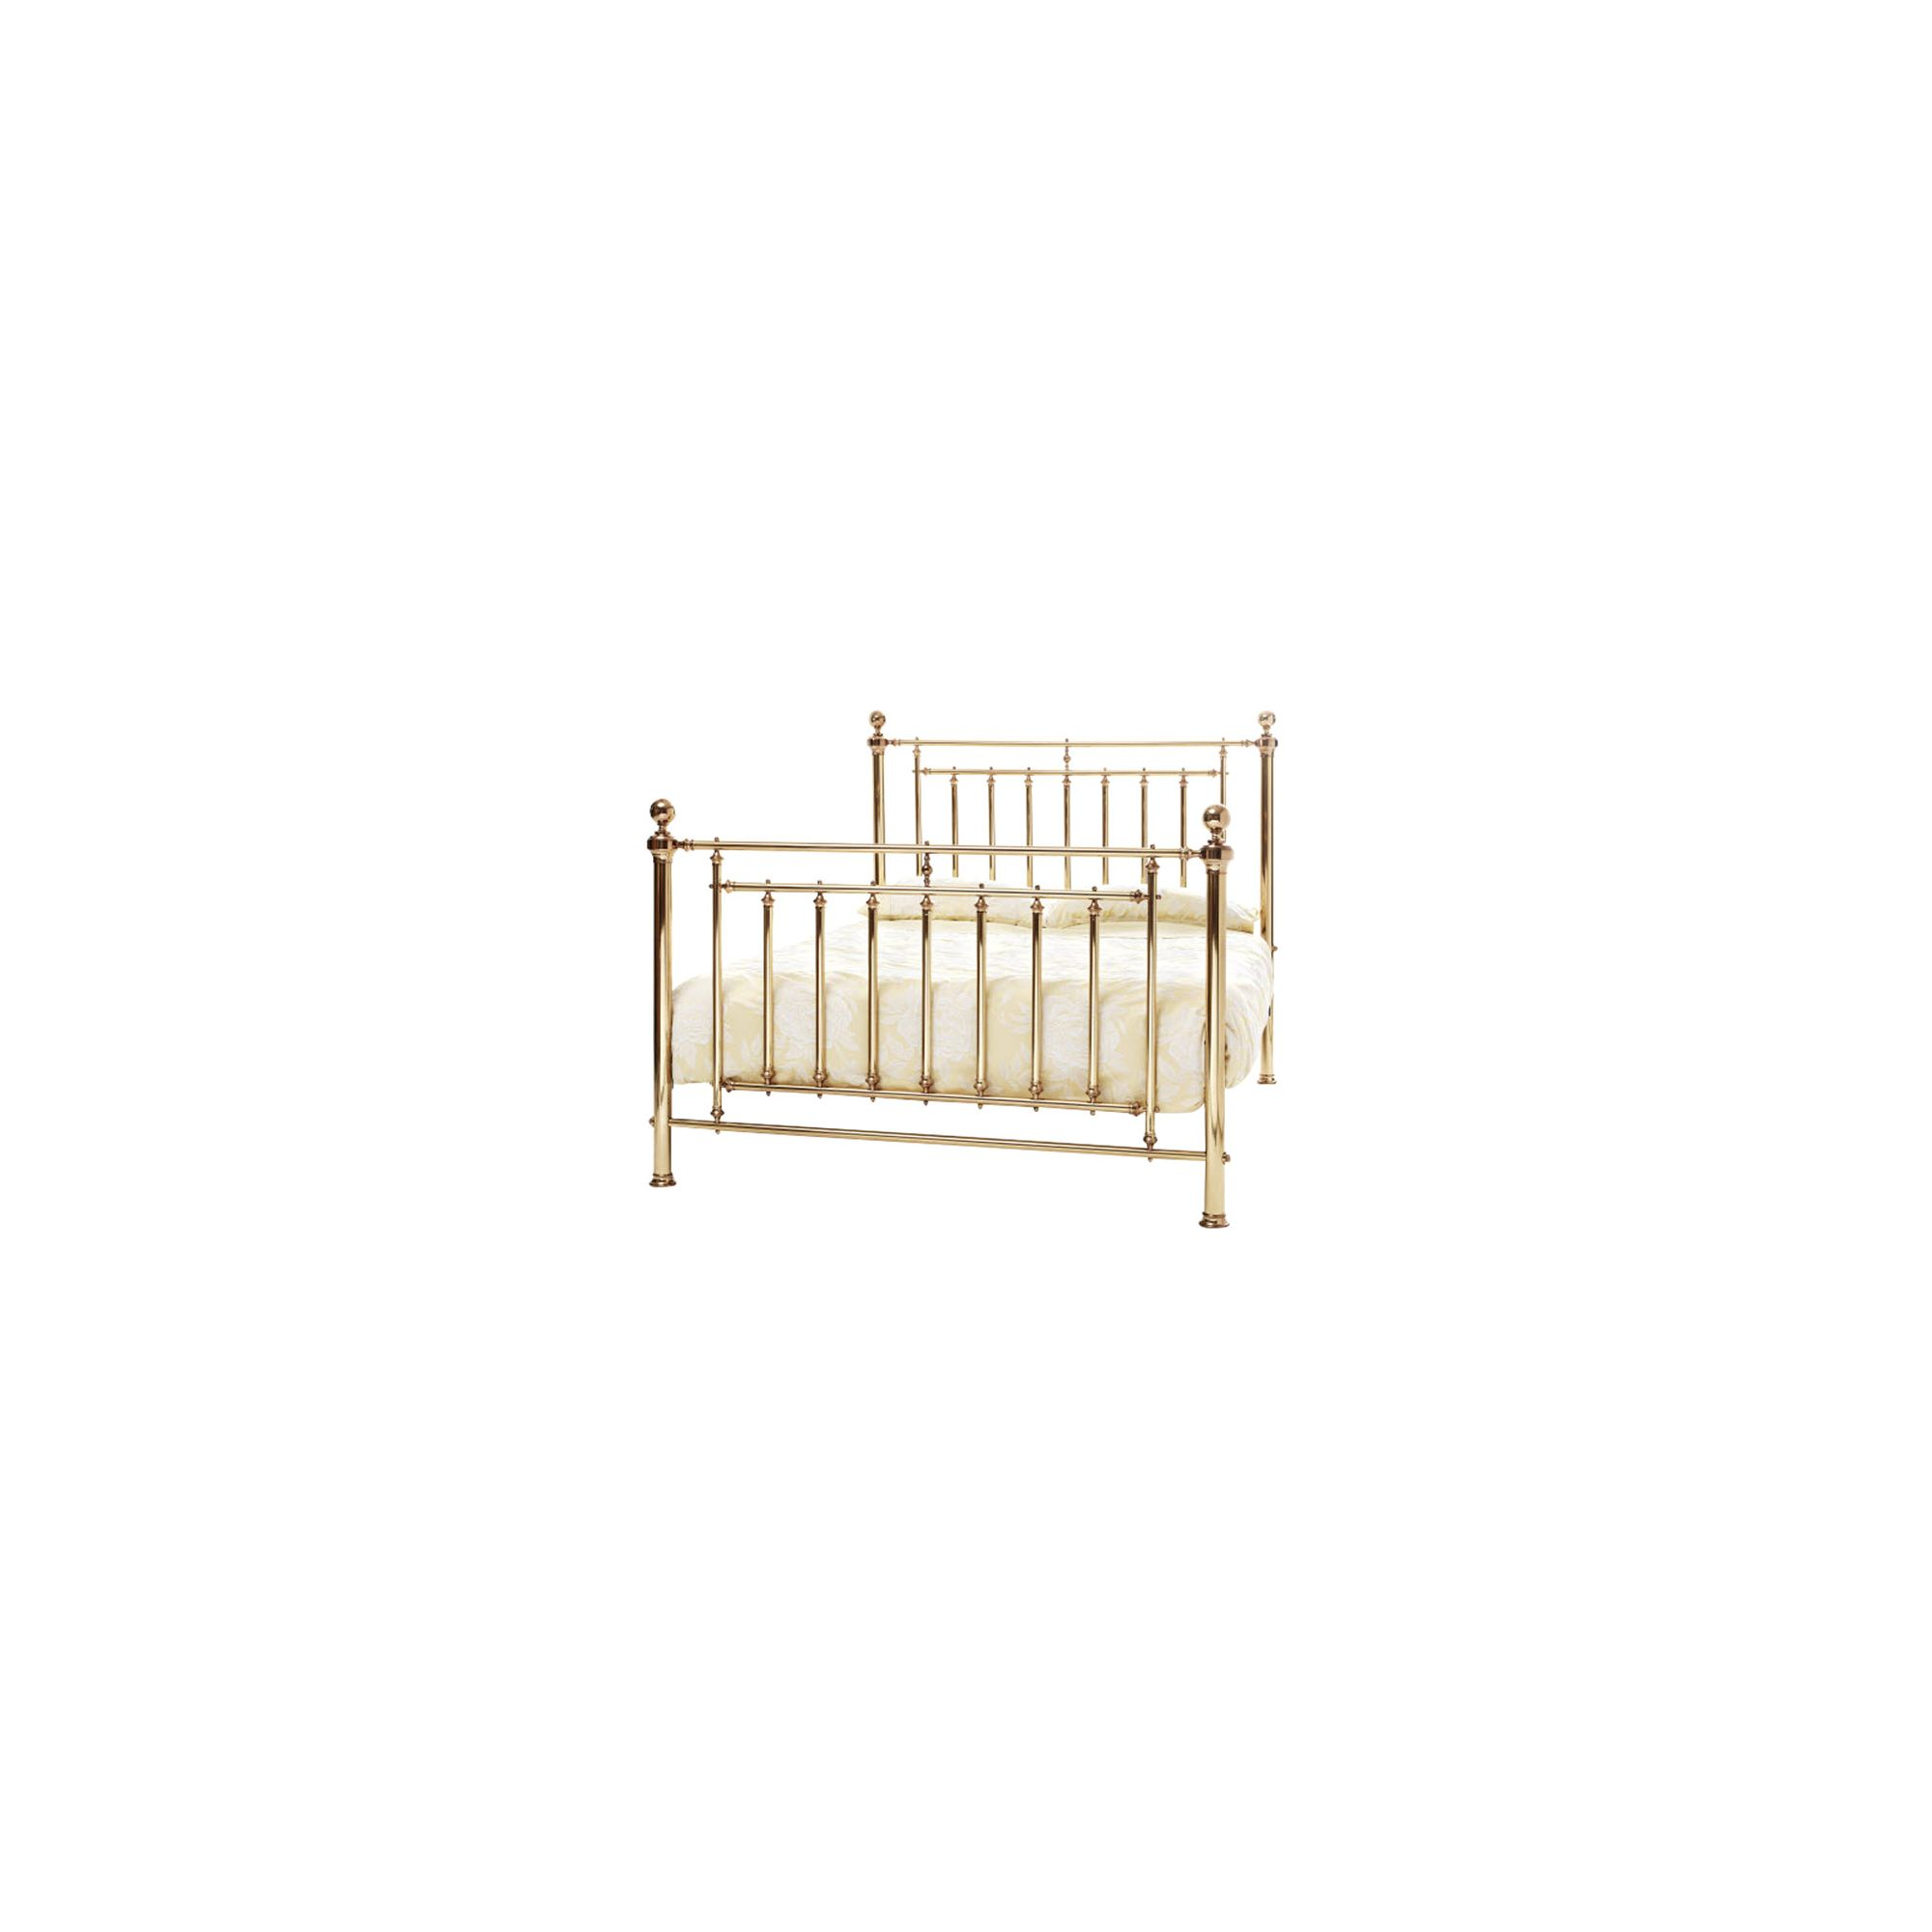 Serene Furnishings Solomon Bed - King - Brass at Tesco Direct